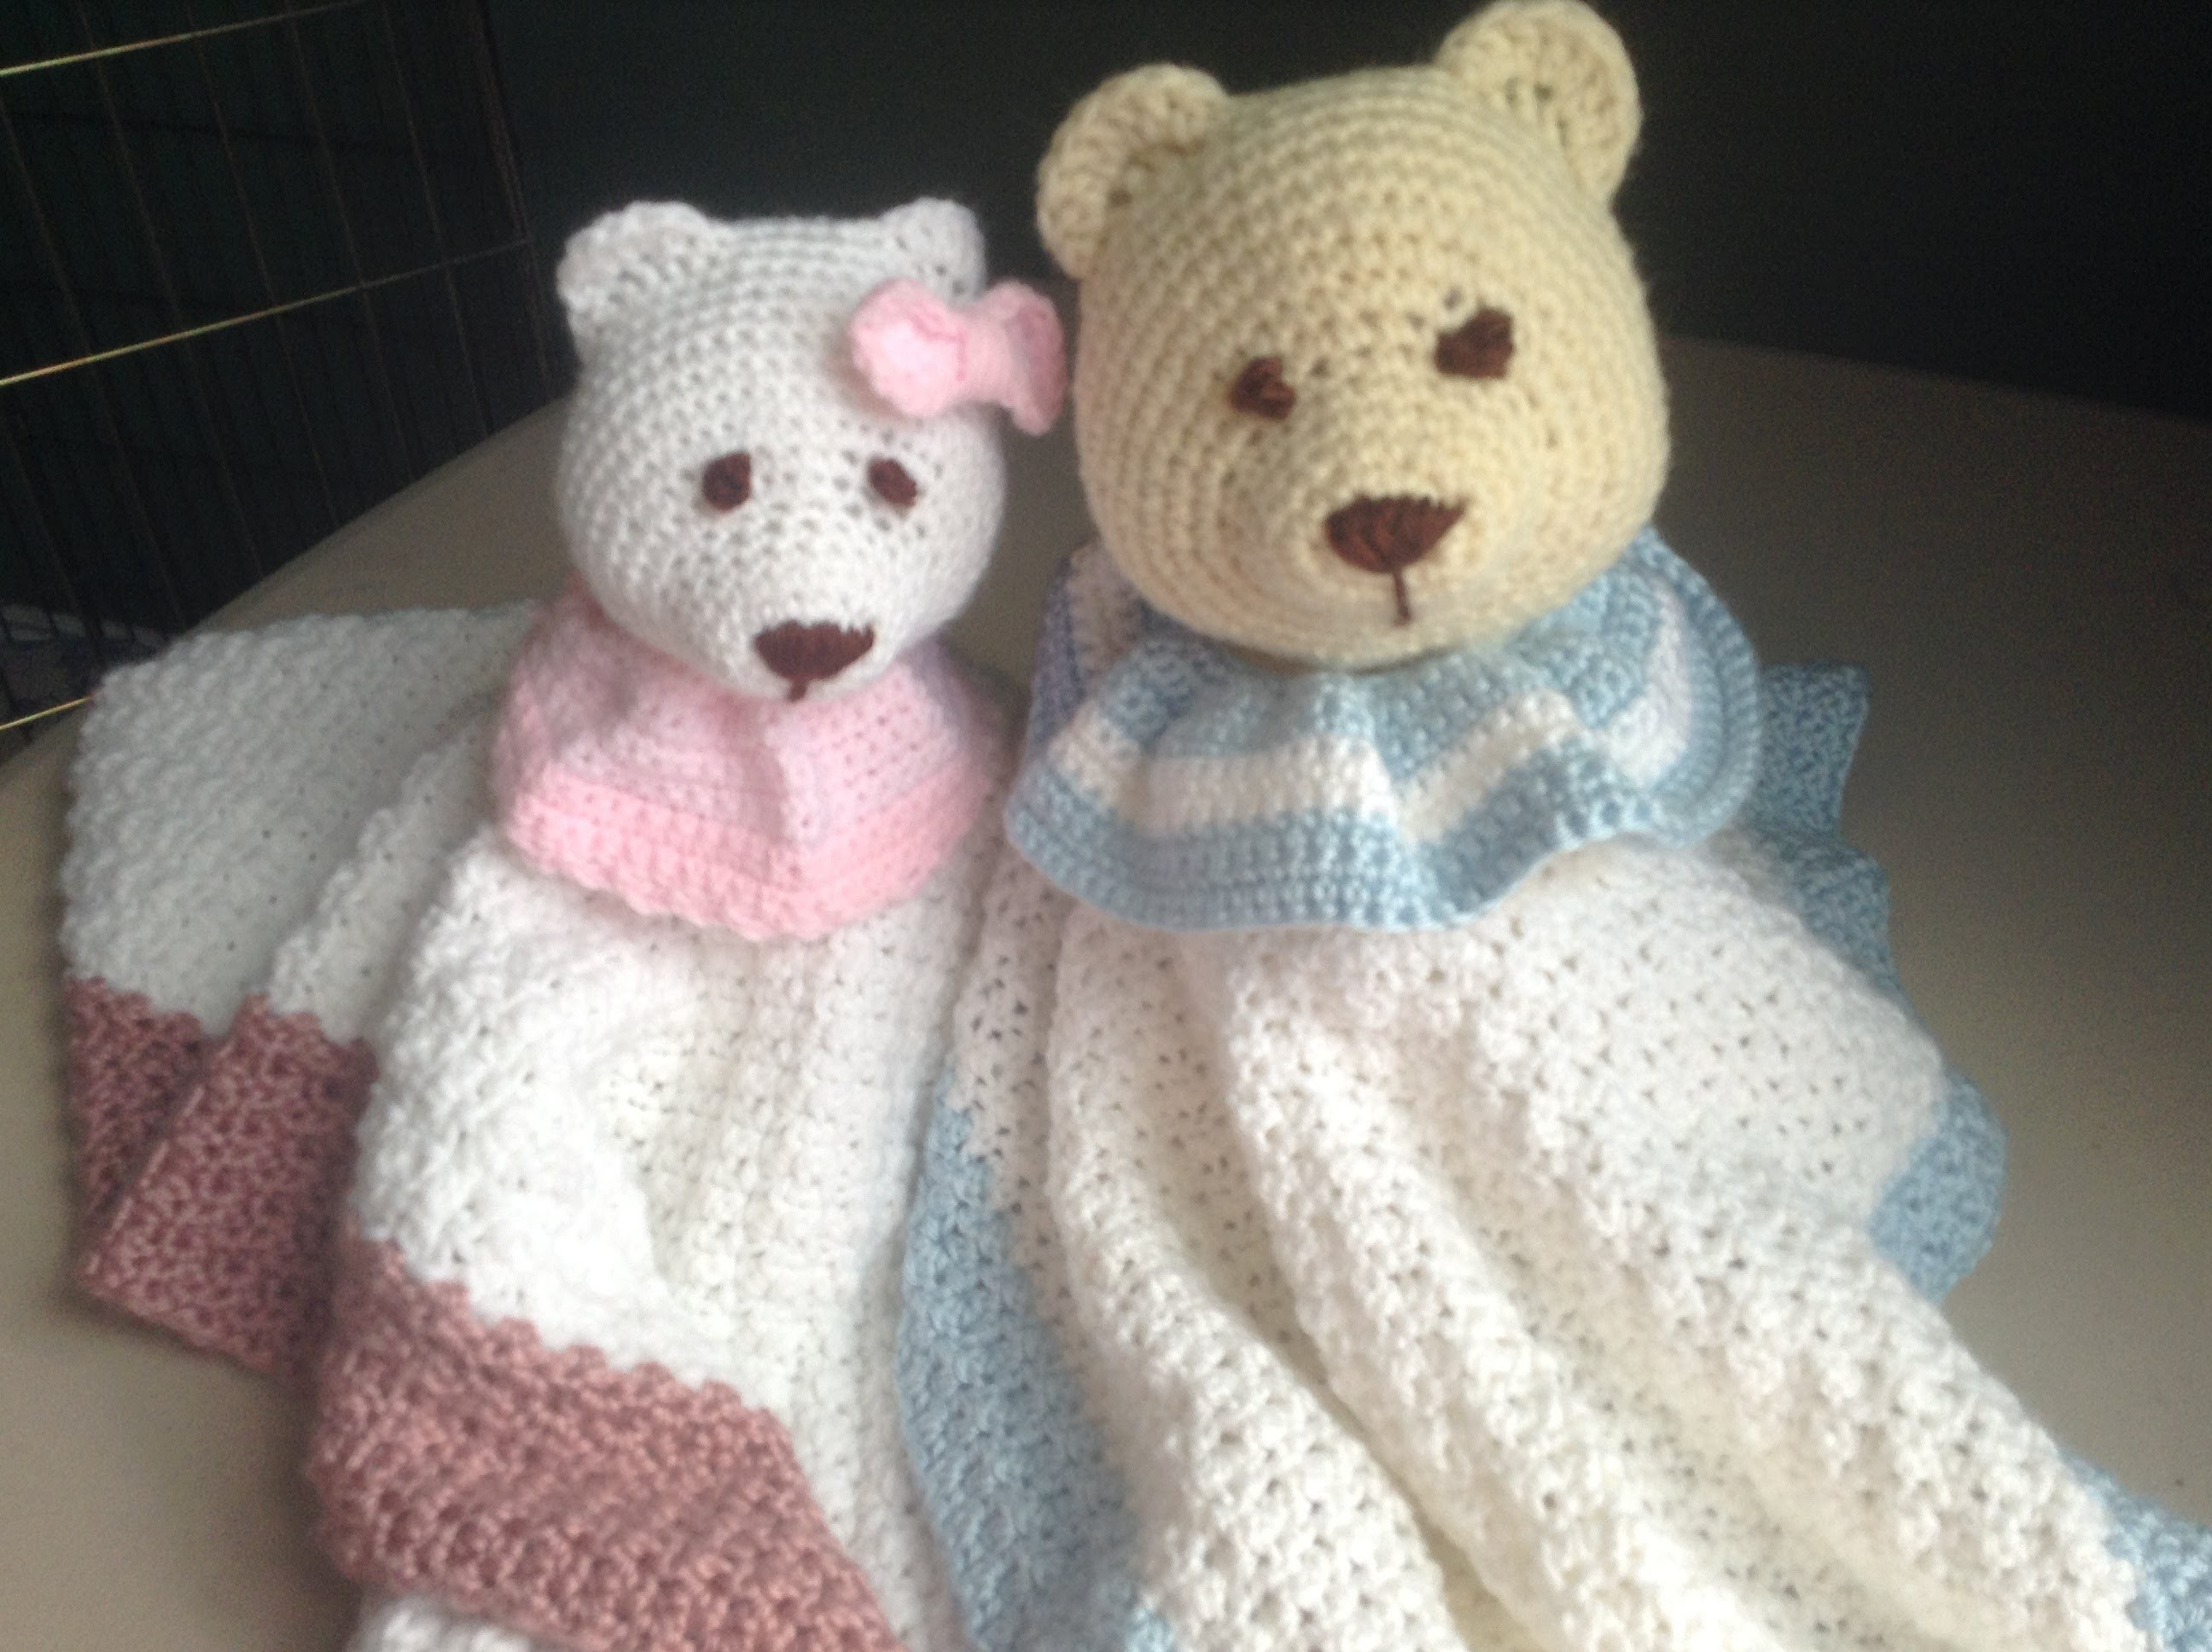 How to Crochet a Baby Blanket Stuffed Animal - Lovey Blanket